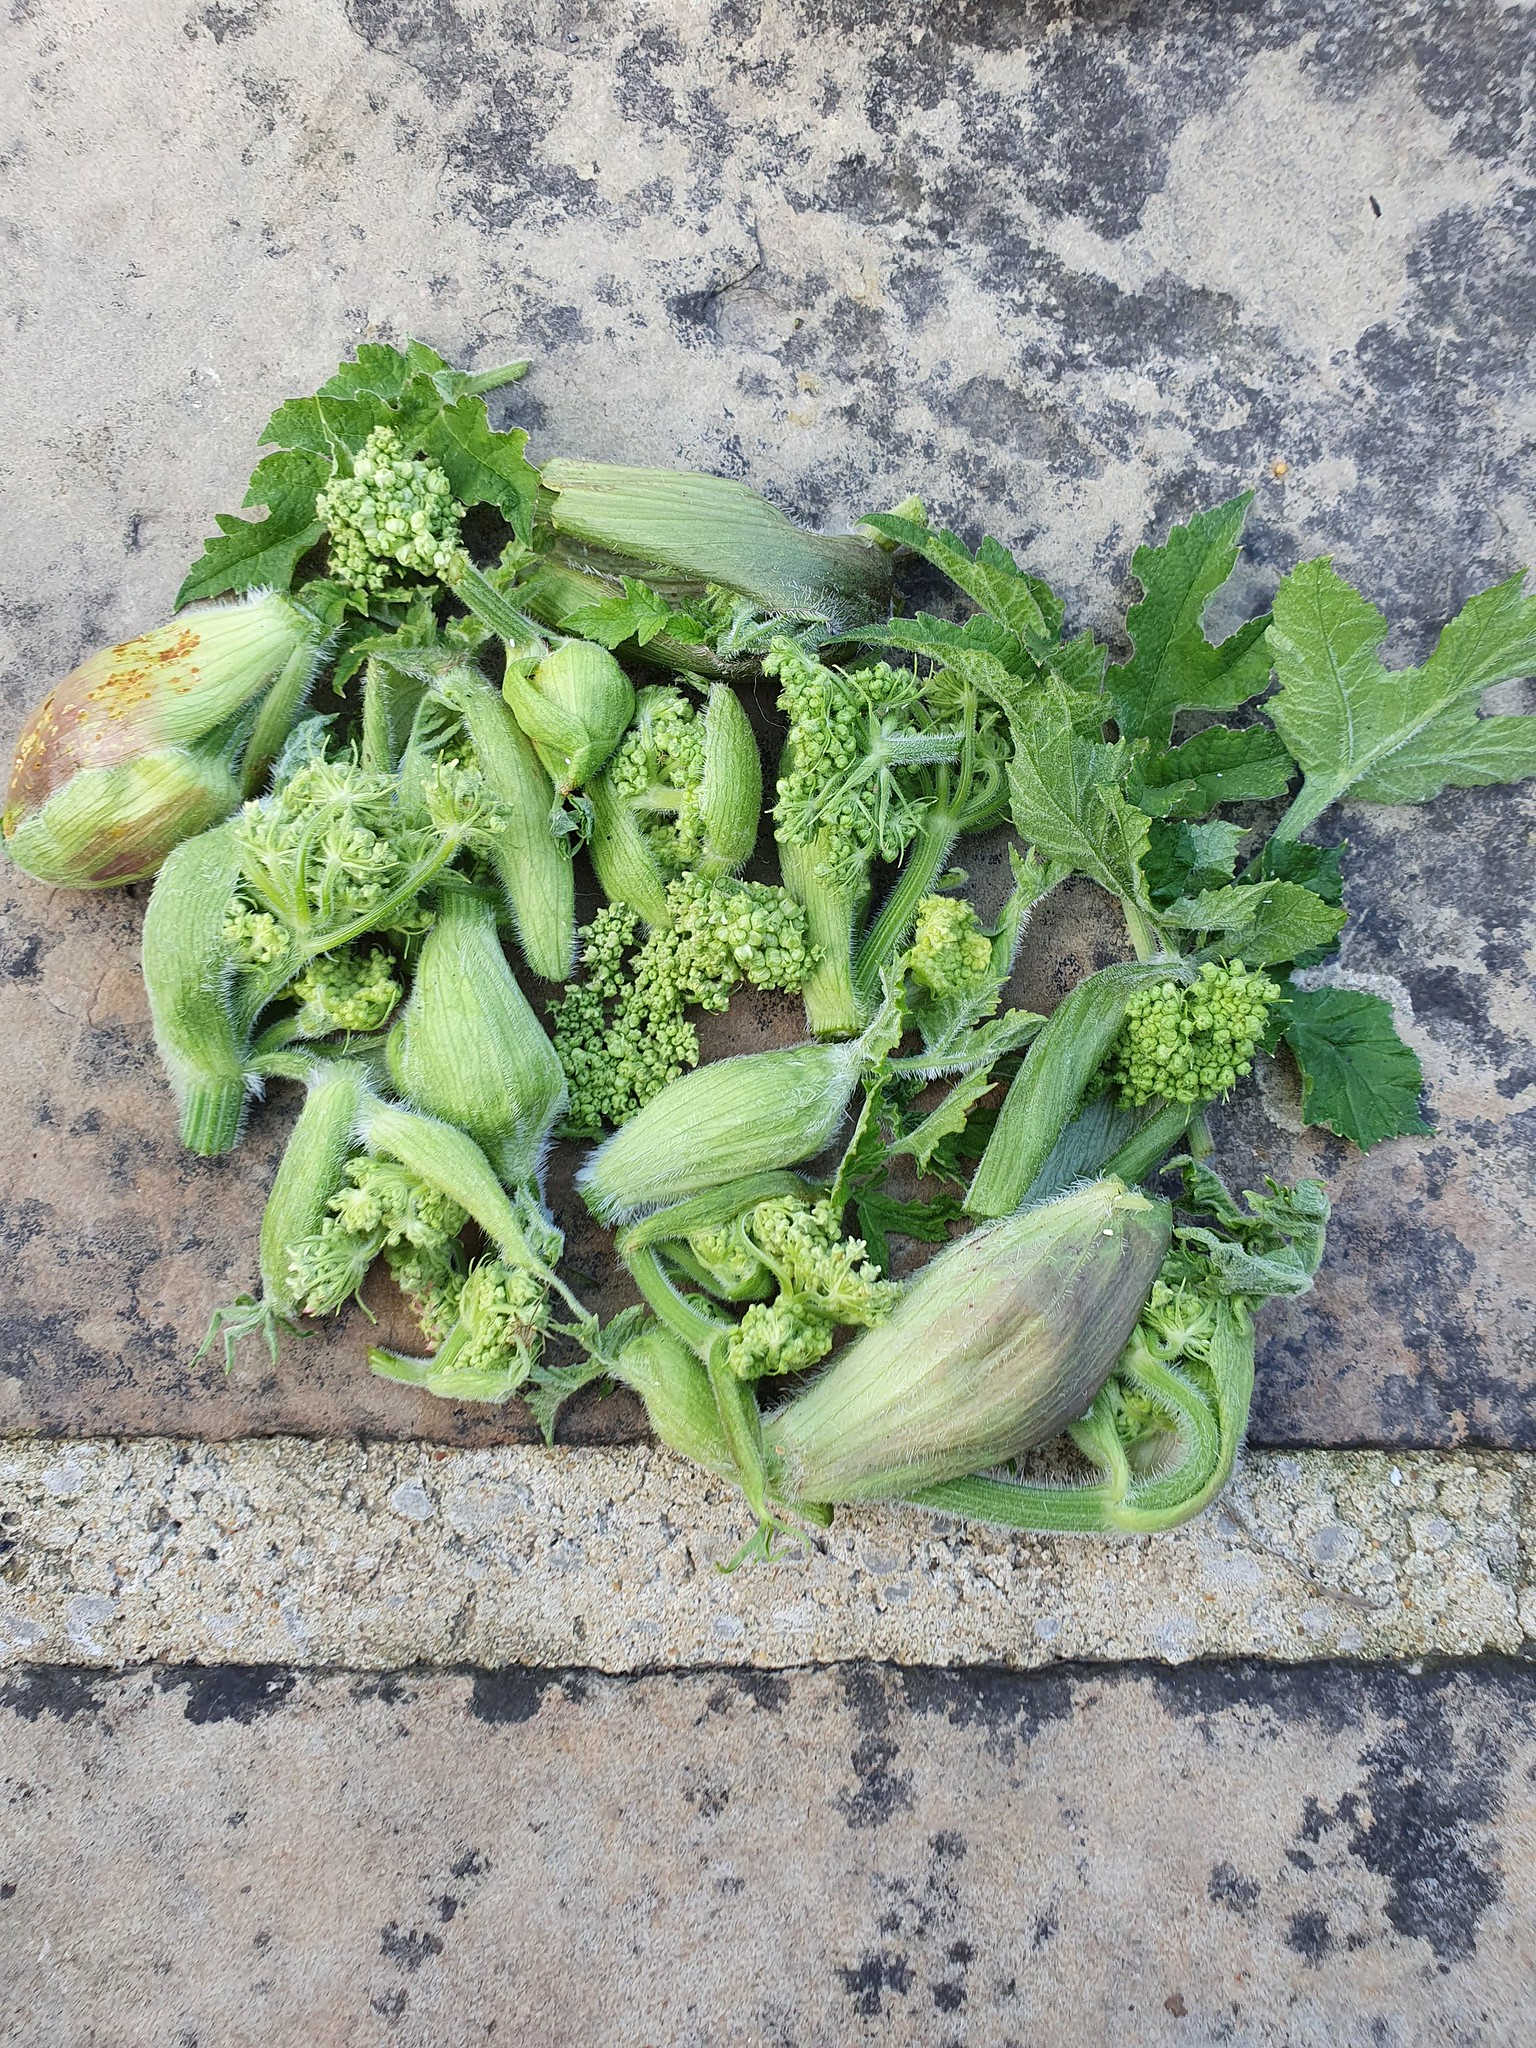 Day 53: Foraging for Common Hogweed Florets (TYOH, July 2021)